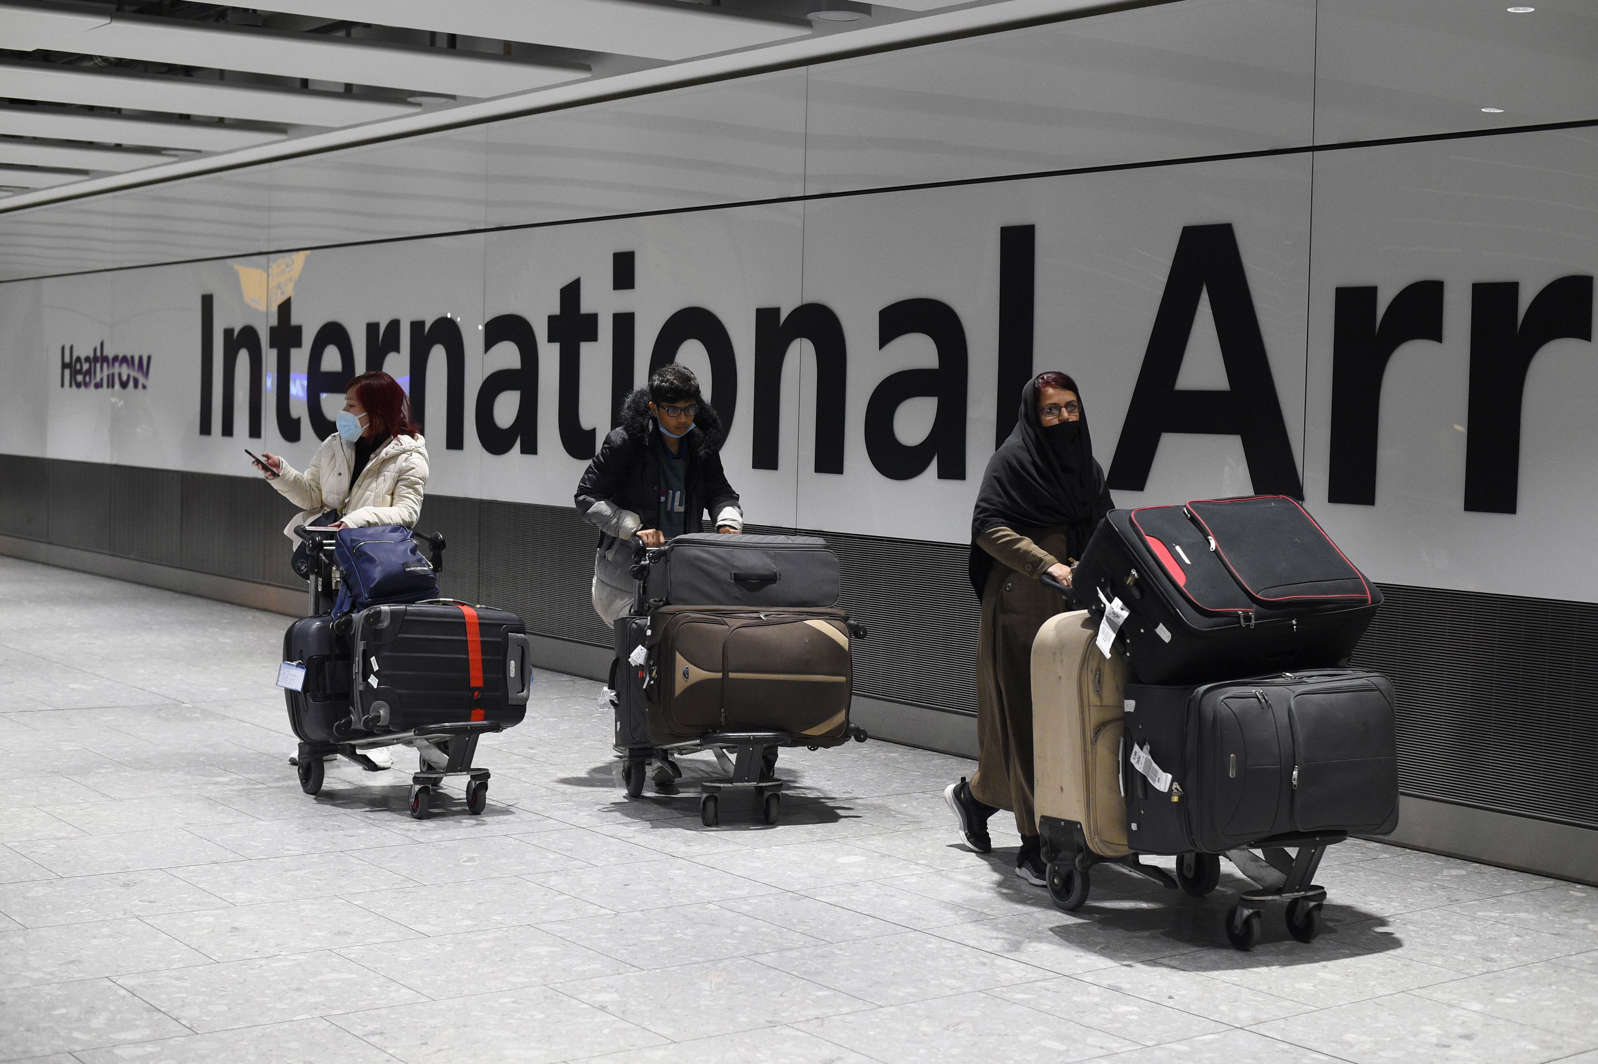 Passengers push luggage through the Arrival Hall of Terminal 5 at London's Heathrow Airport after arriving into the UK following the suspension of the travel corridors. Passengers arriving from anywhere outside the UK, Ireland, the Channel Islands or the Isle of Man must have proof of a negative coronavirus test and self-isolate for 10 days. Picture date: Monday January 18, 2021. (Photo by Kirsty O'Connor/PA Images via Getty Images)